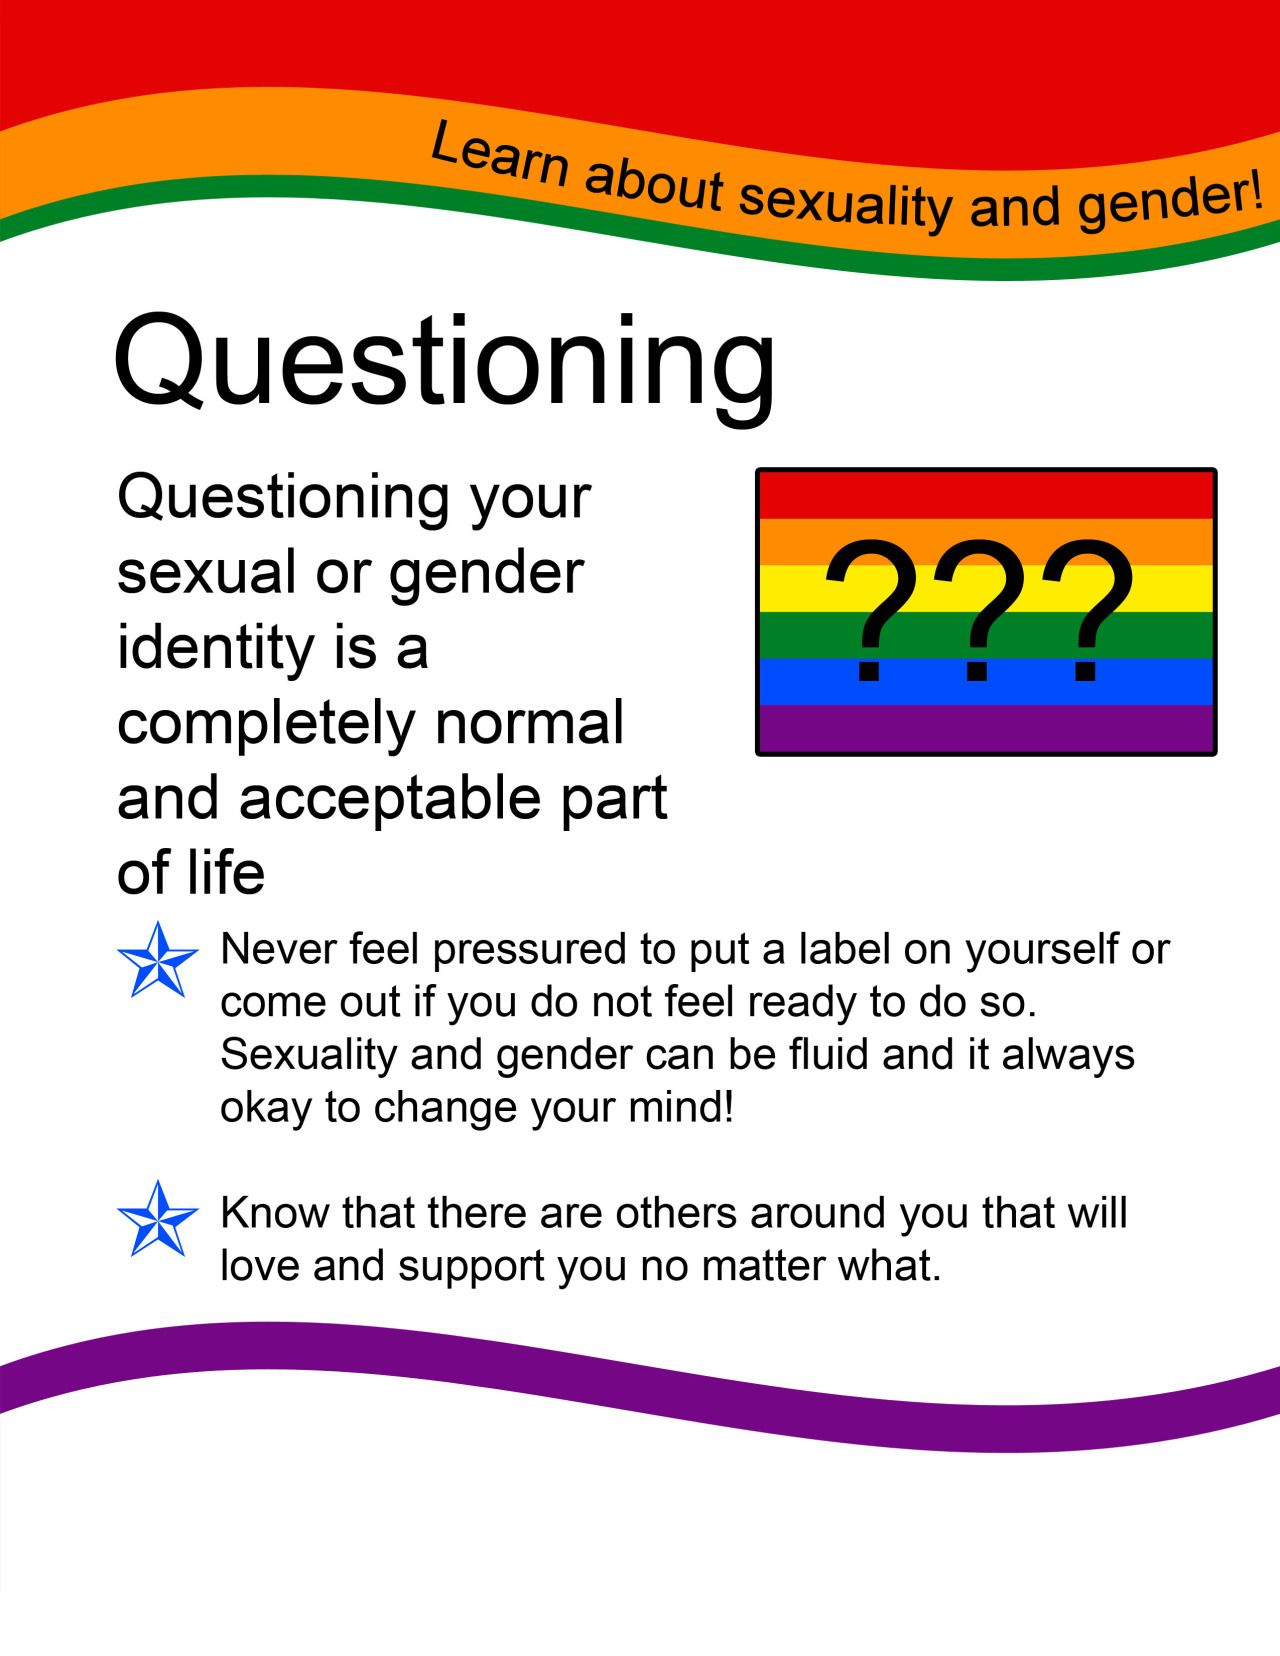 Does questioning your sexuality mean